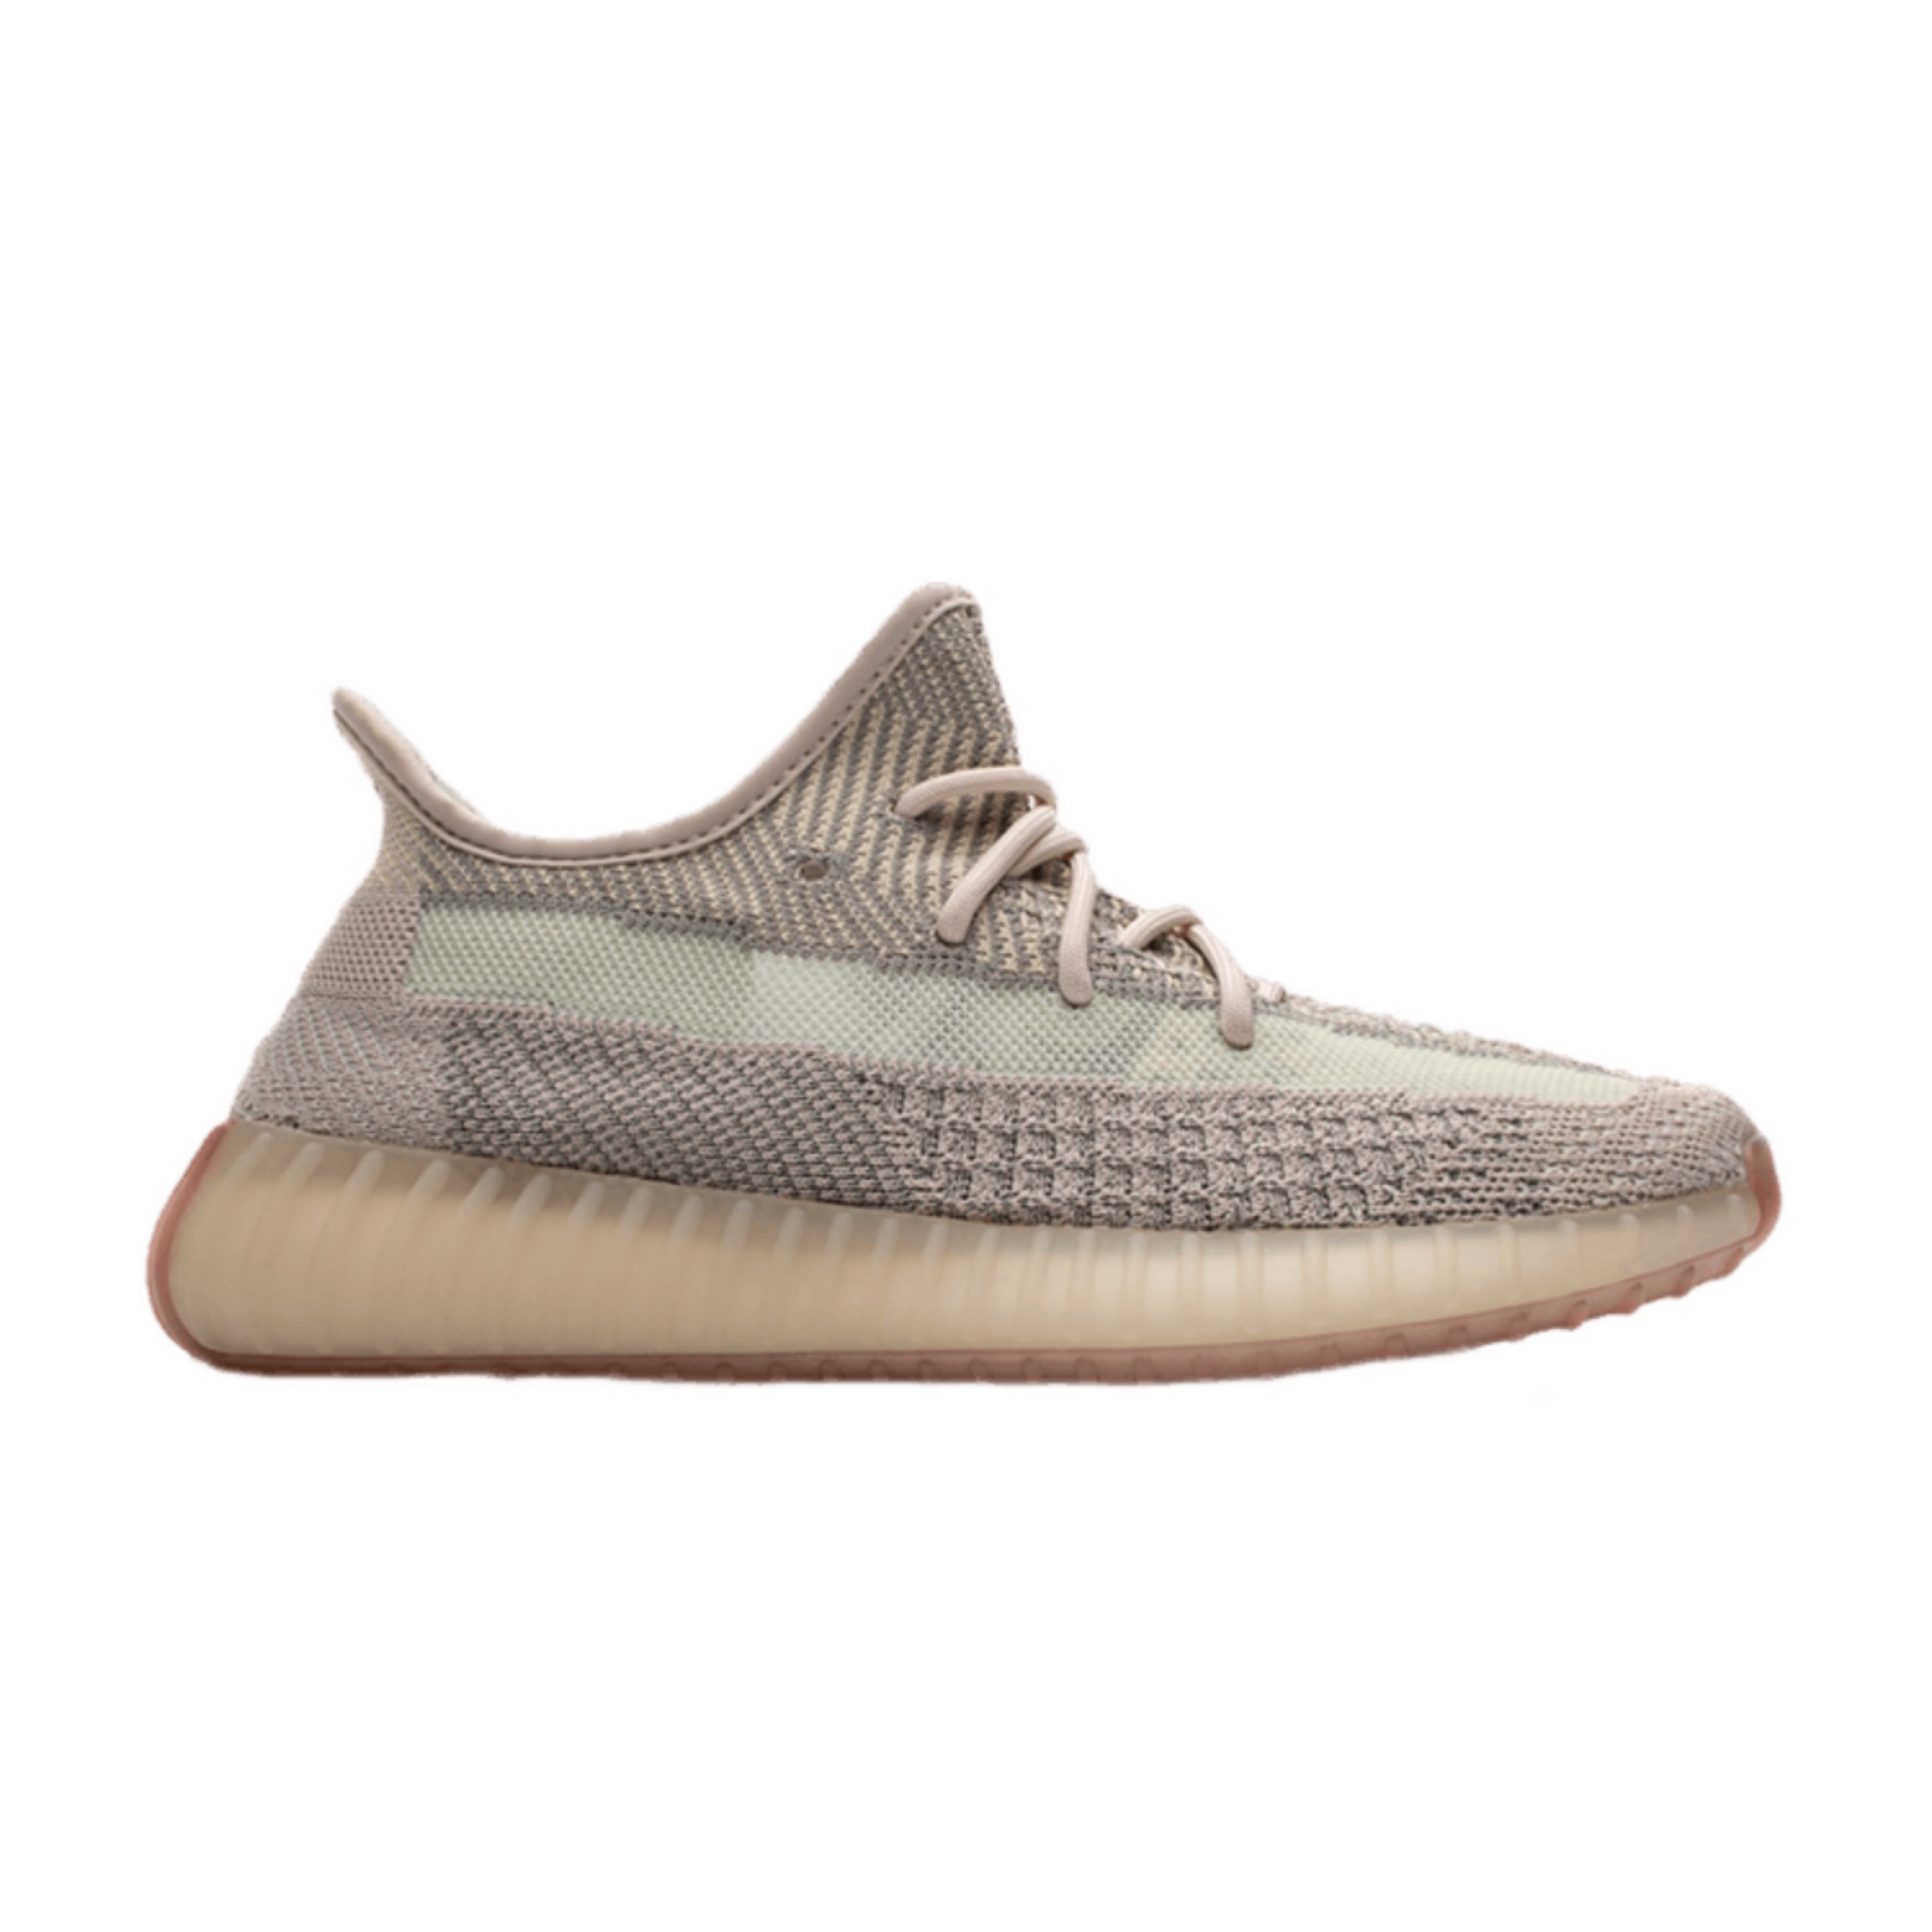 """outlet store 51207 dbd2c Pre-Order Yeezy Boost 350 V2 """"Citron Reflective"""""""